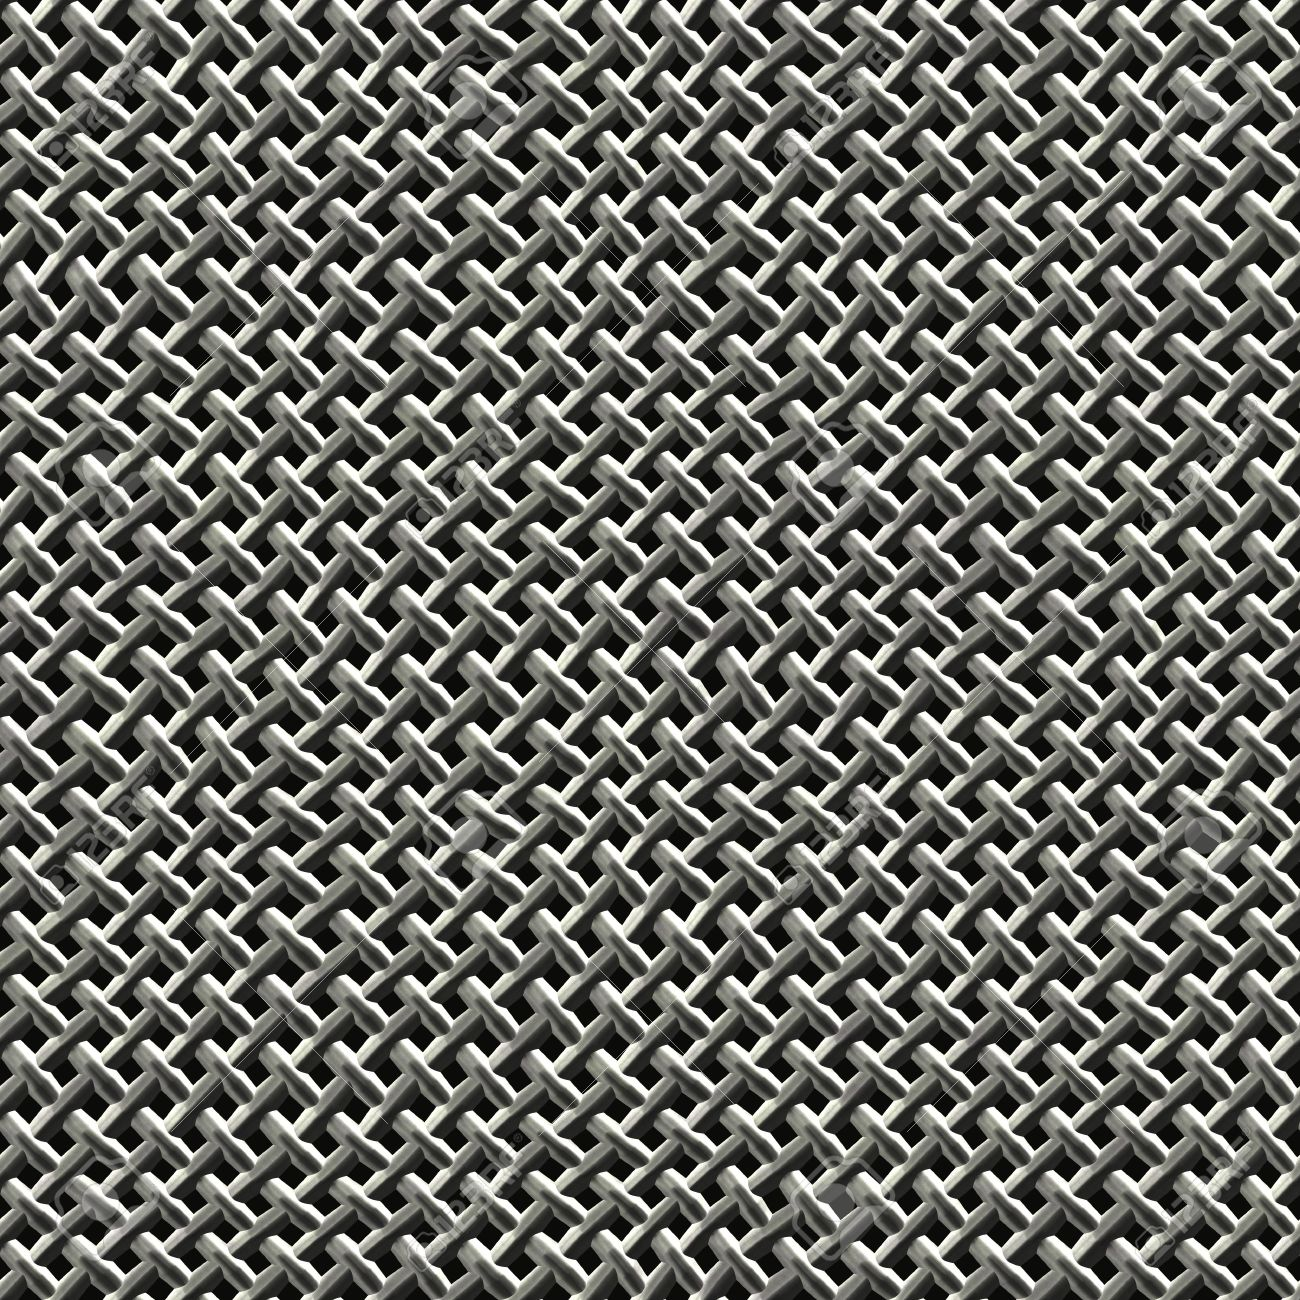 Steel Wire Mesh Texture That Tiles Seamlessly As A Pattern. Stock ...